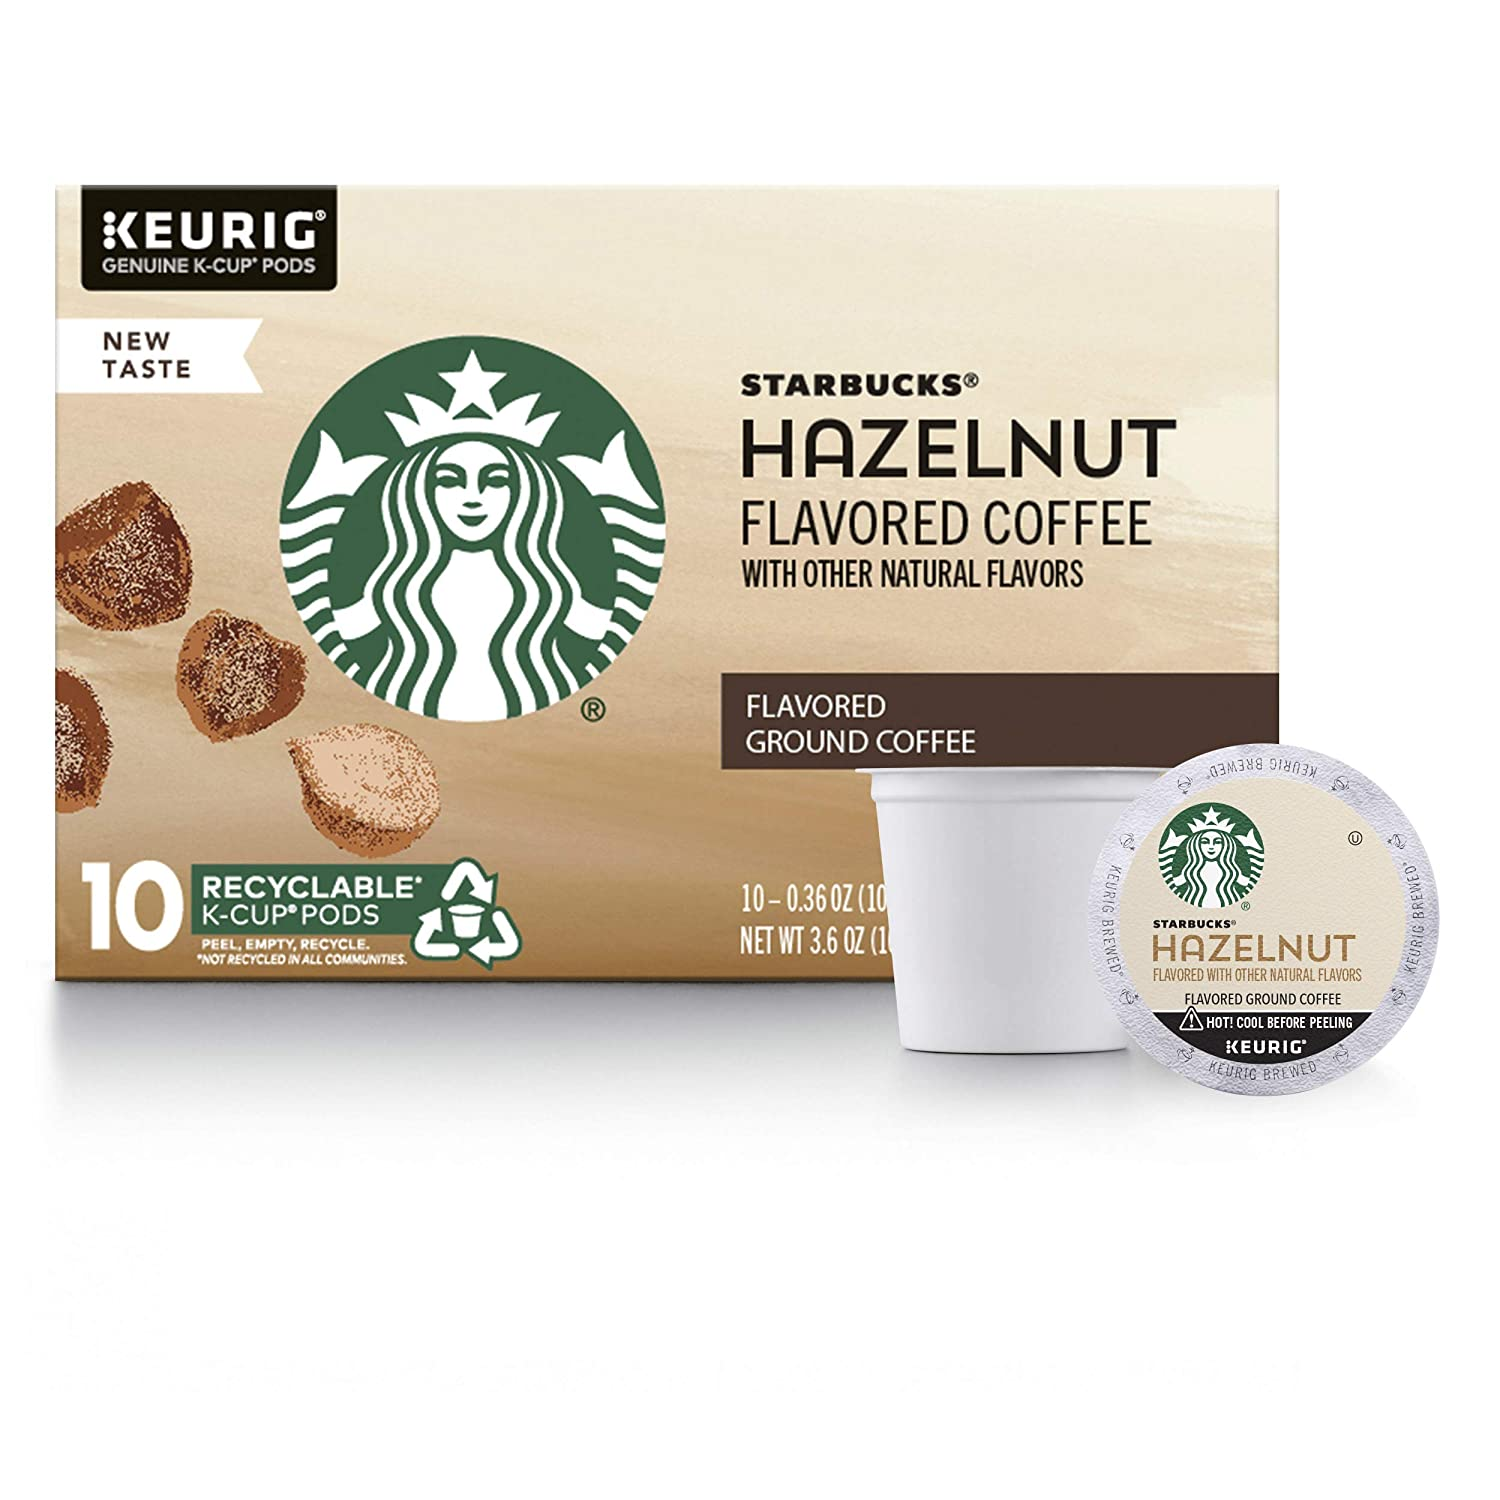 Starbucks Hazelnut Flavored Medium Roast Single Cup Coffee for Keurig Brewers, 6 Boxes of 10 (60 Total K-Cup pods)